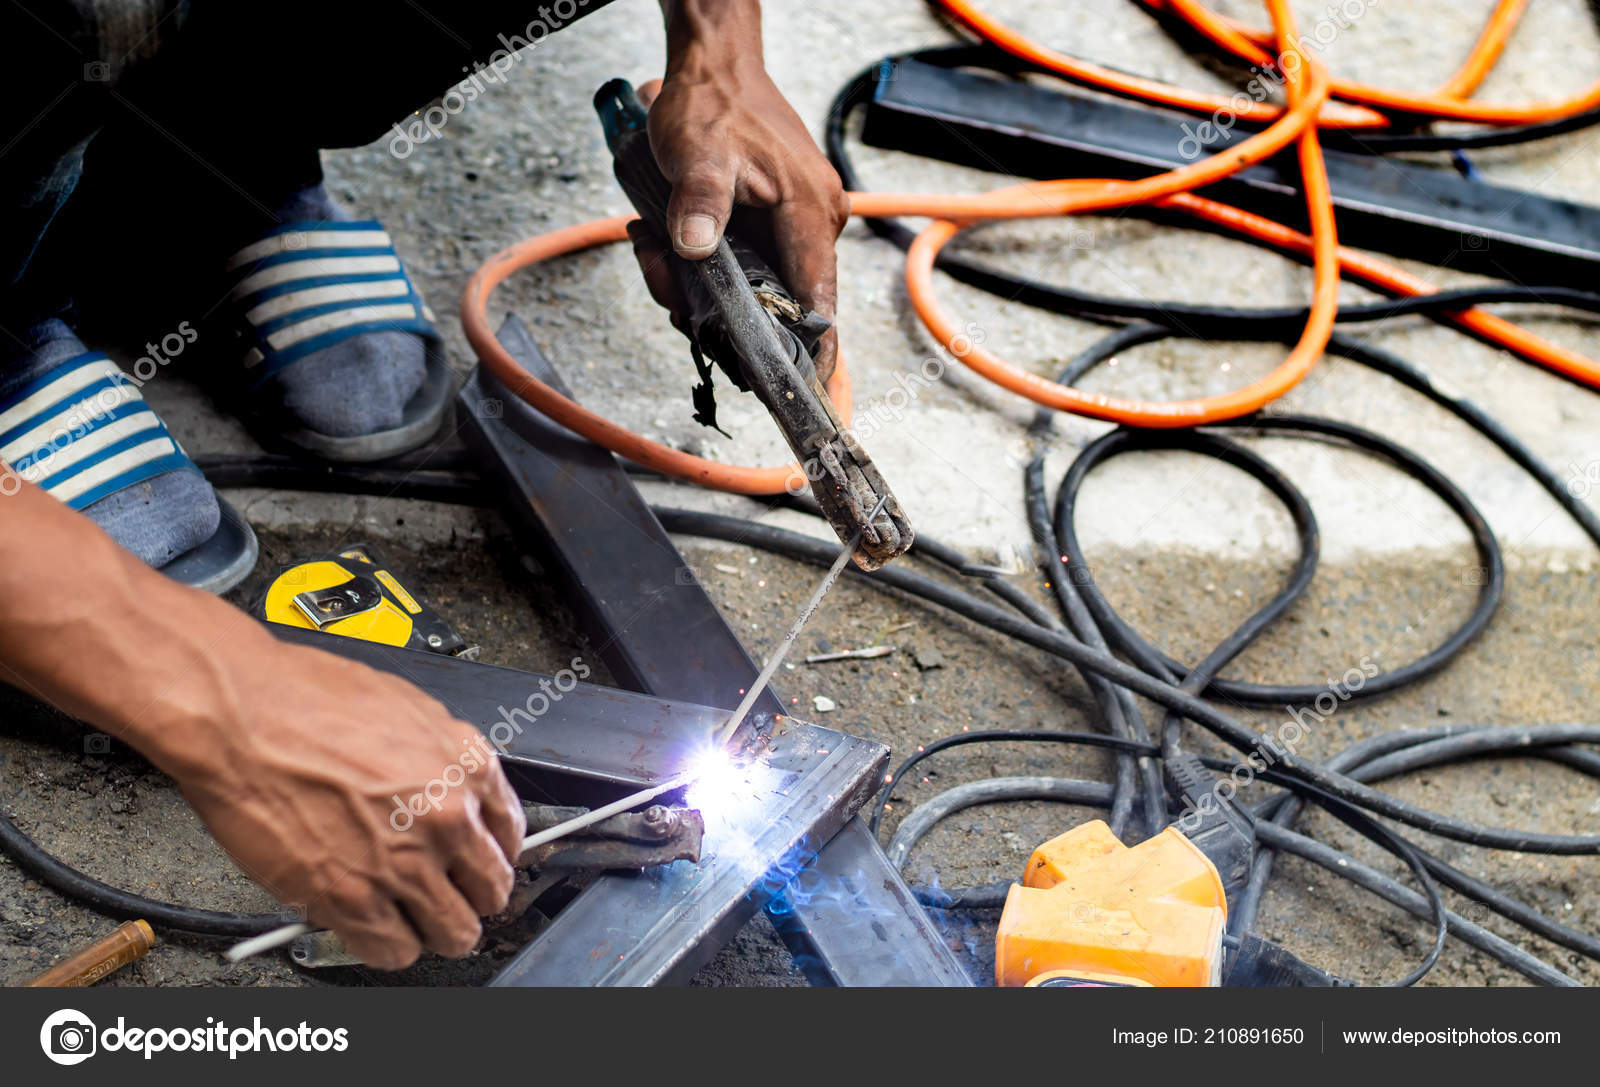 Workers Welding Steel Thailand — Stock Photo © nuengbk@gmail com